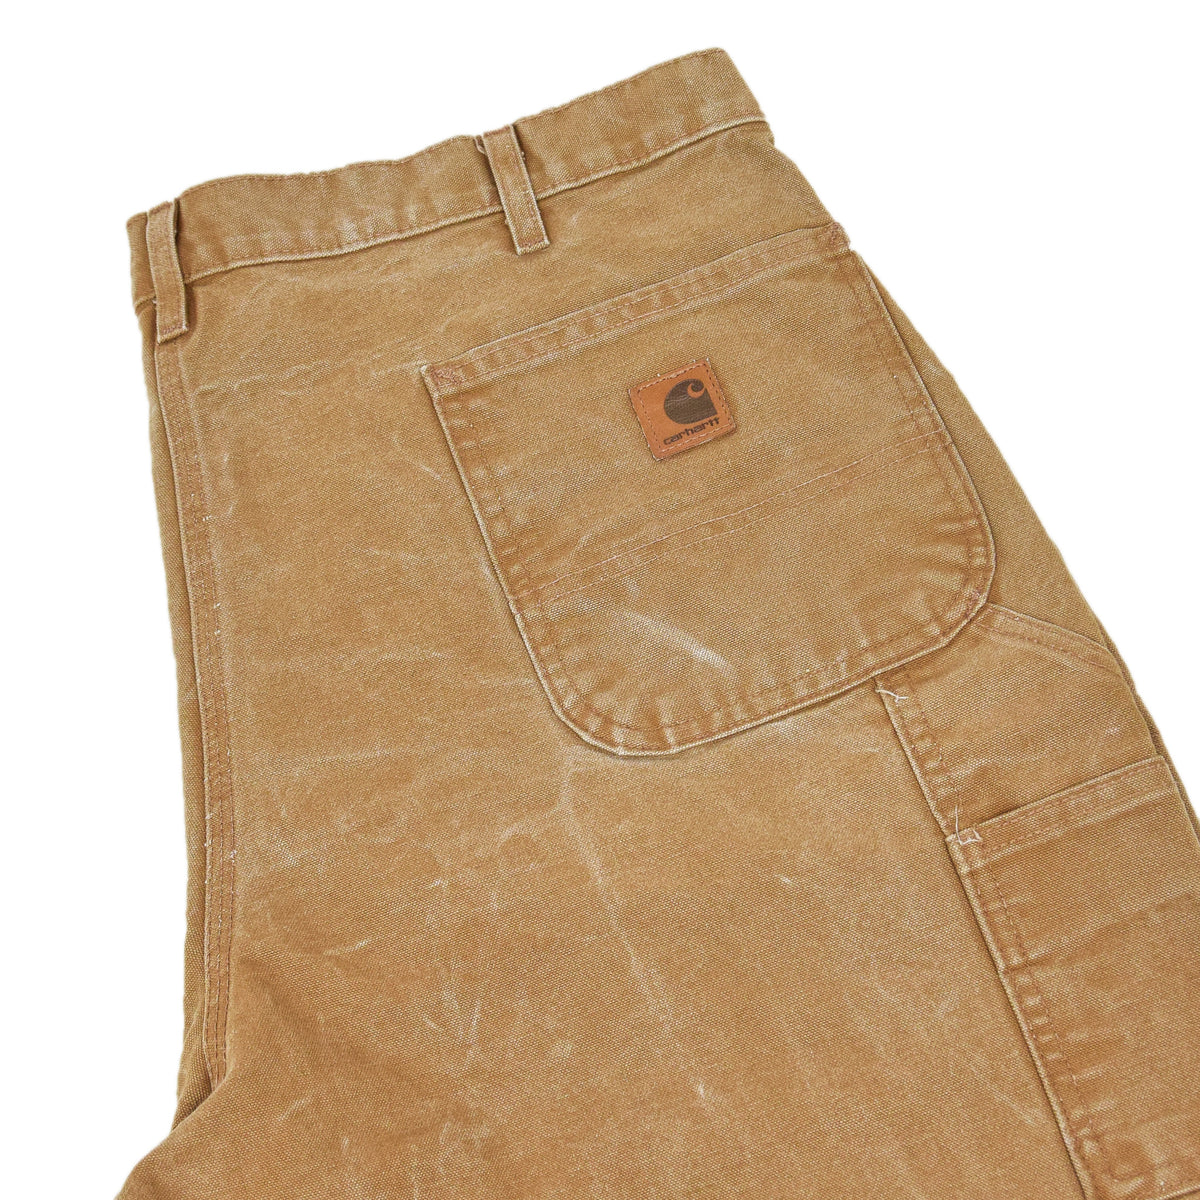 Vintage Carhartt Tan Brown Duck Canvas Utility Work Pant Dungaree Fit 38 W 32 L back pocket